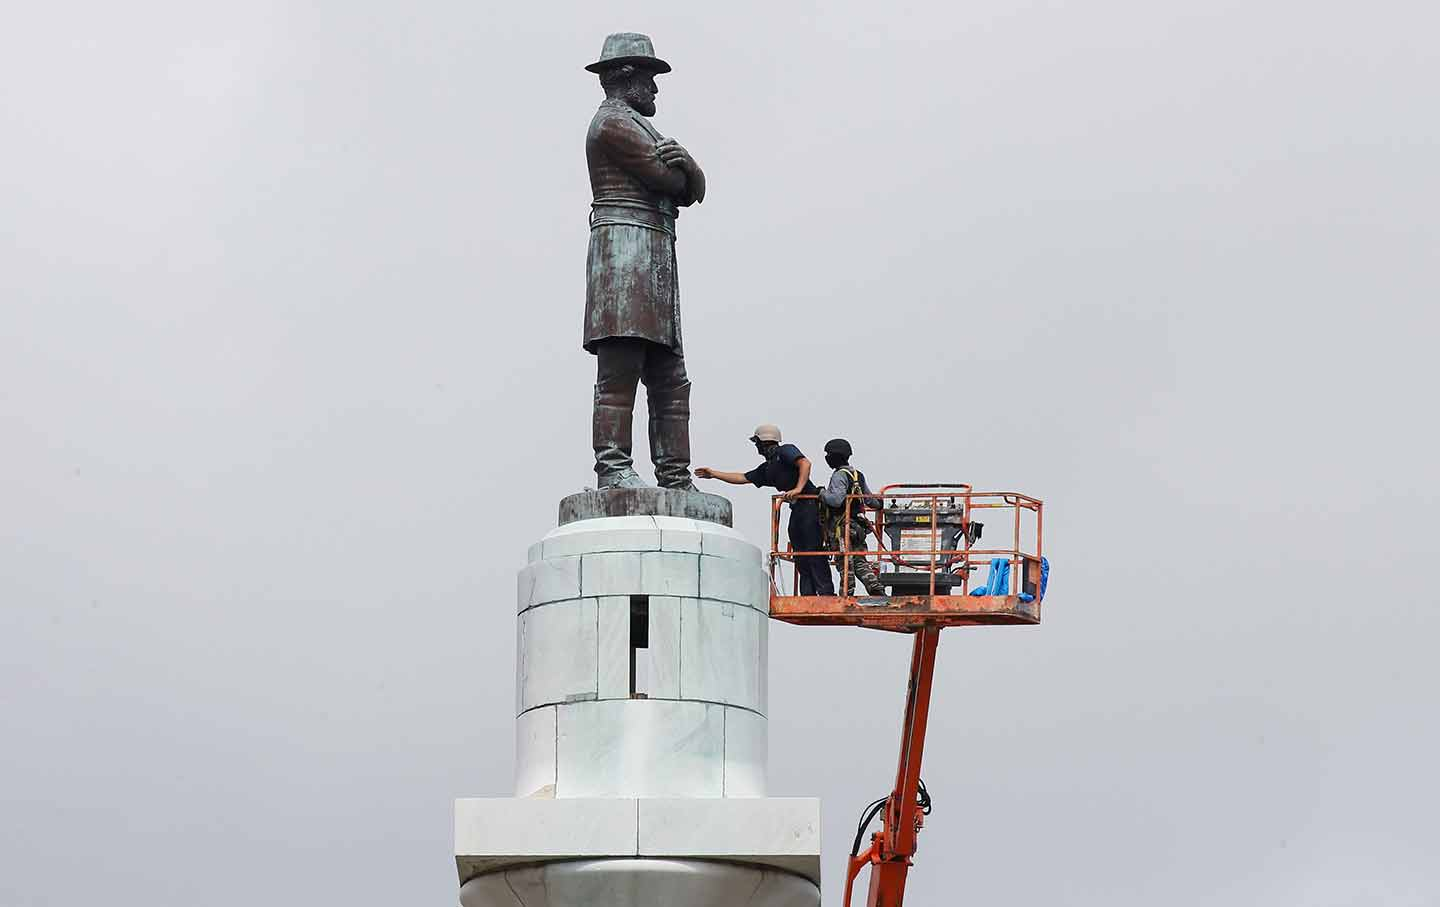 robert e lee removal